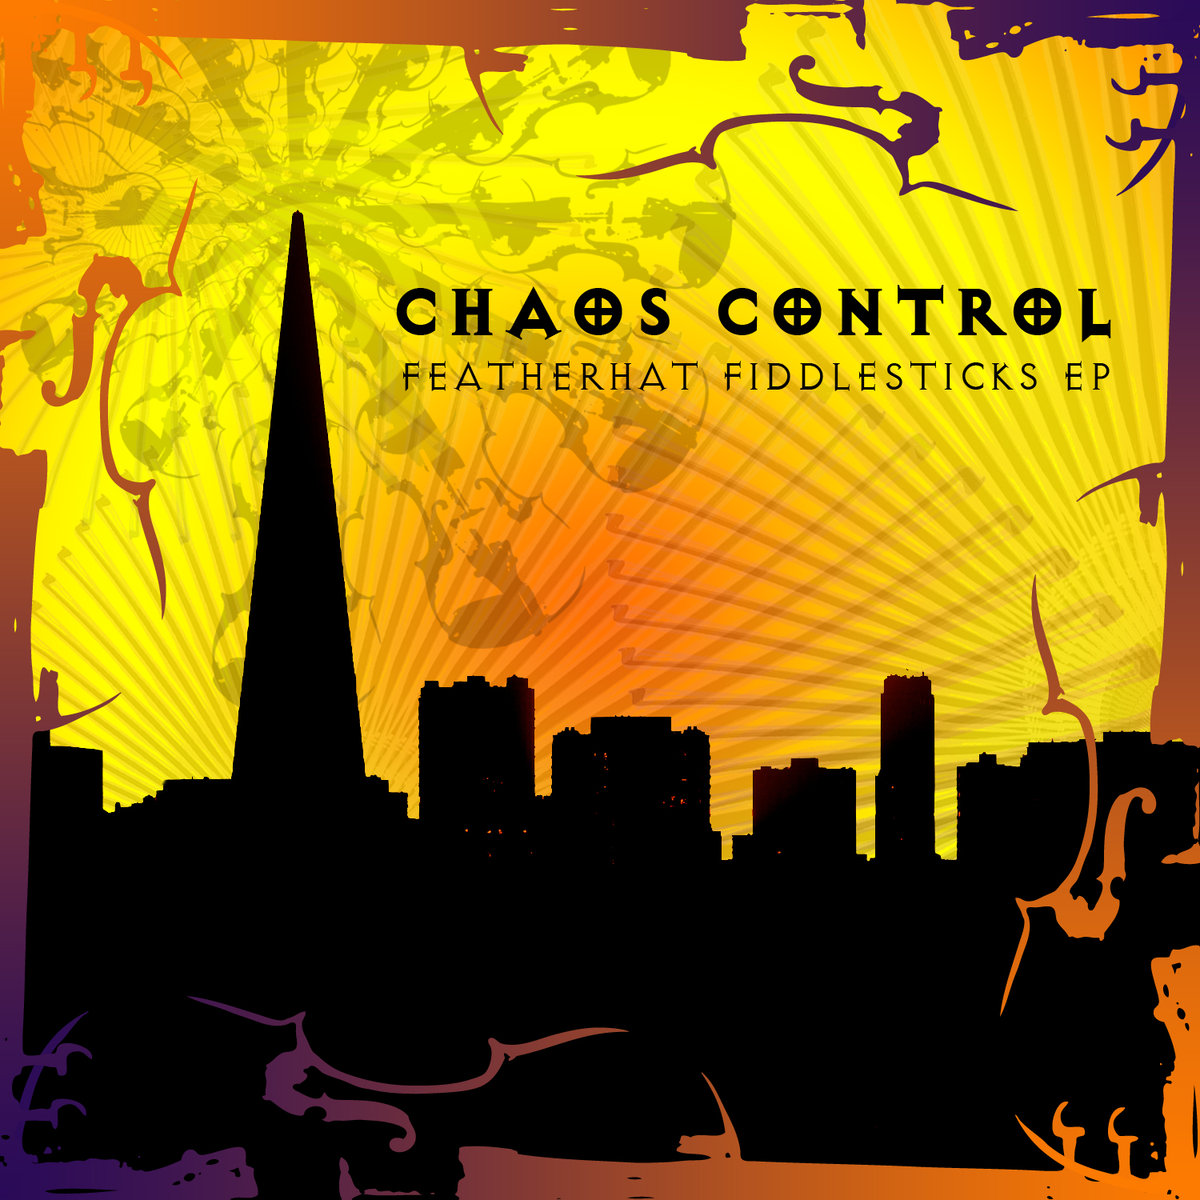 Chaos Control - Featherhat Fiddlesticks